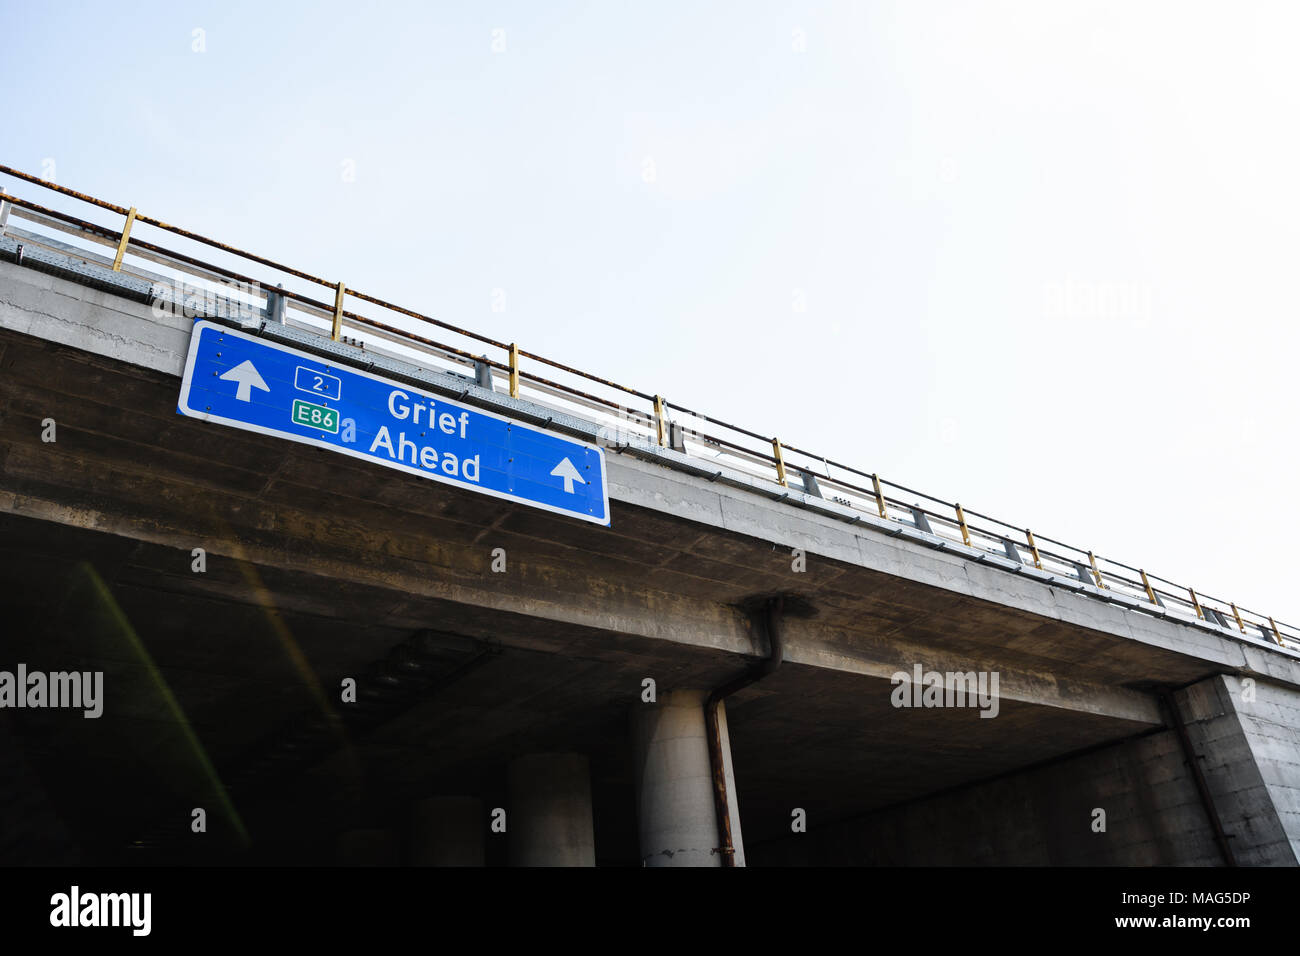 Grief Ahead Blue Road Sign Against Clear Sky - Stock Image